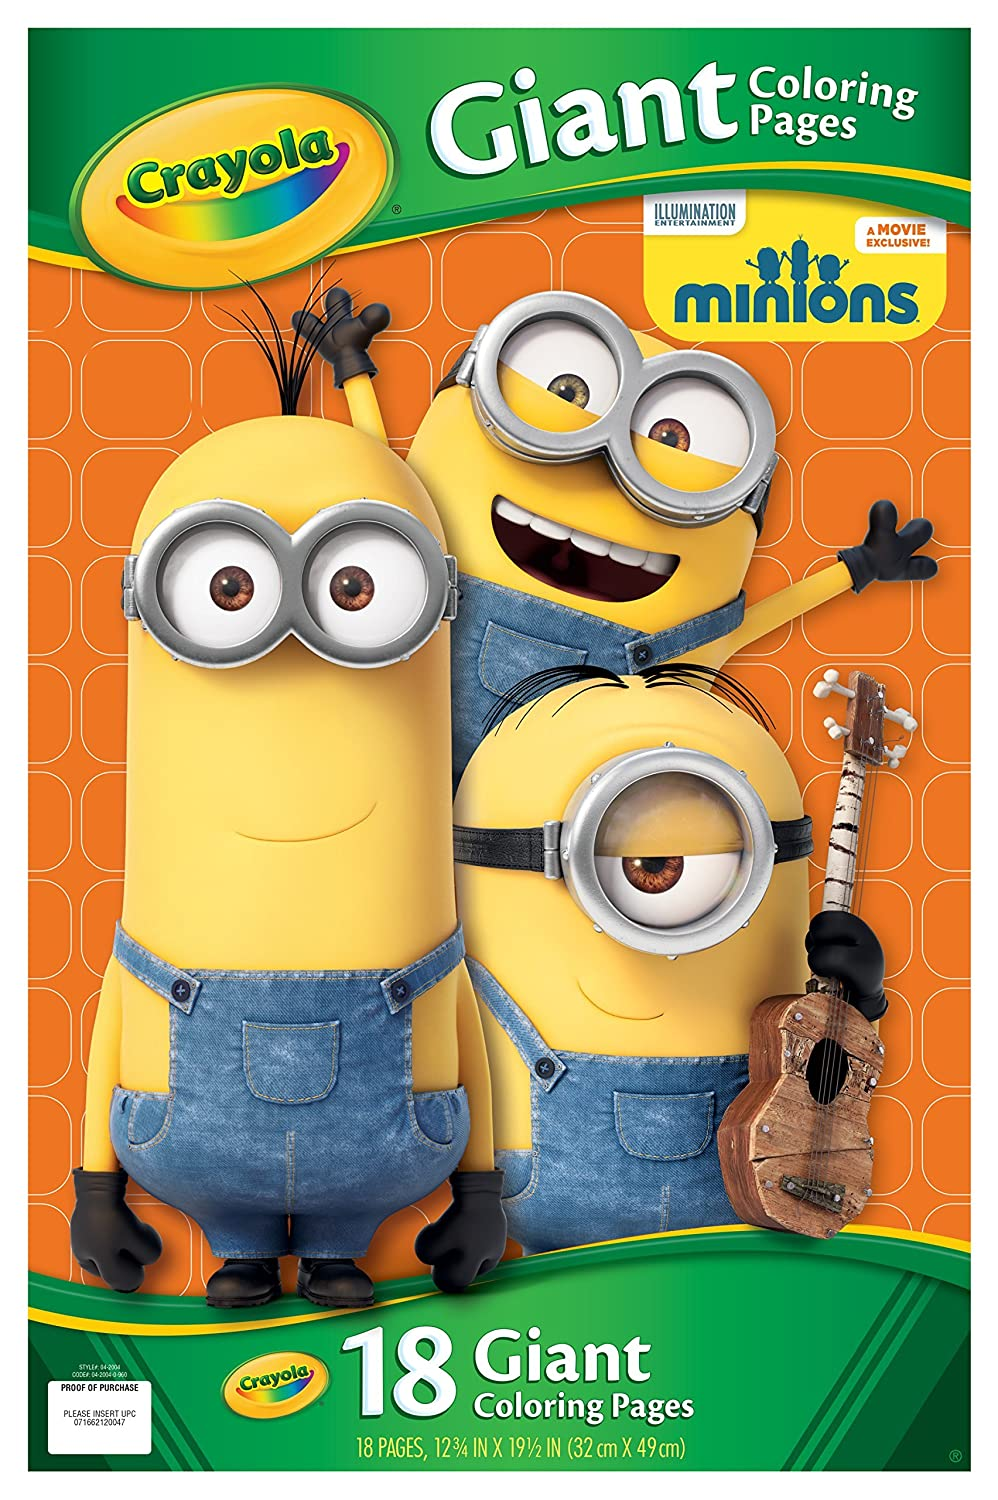 Coloring games online minion - Coloring Games Online Minion